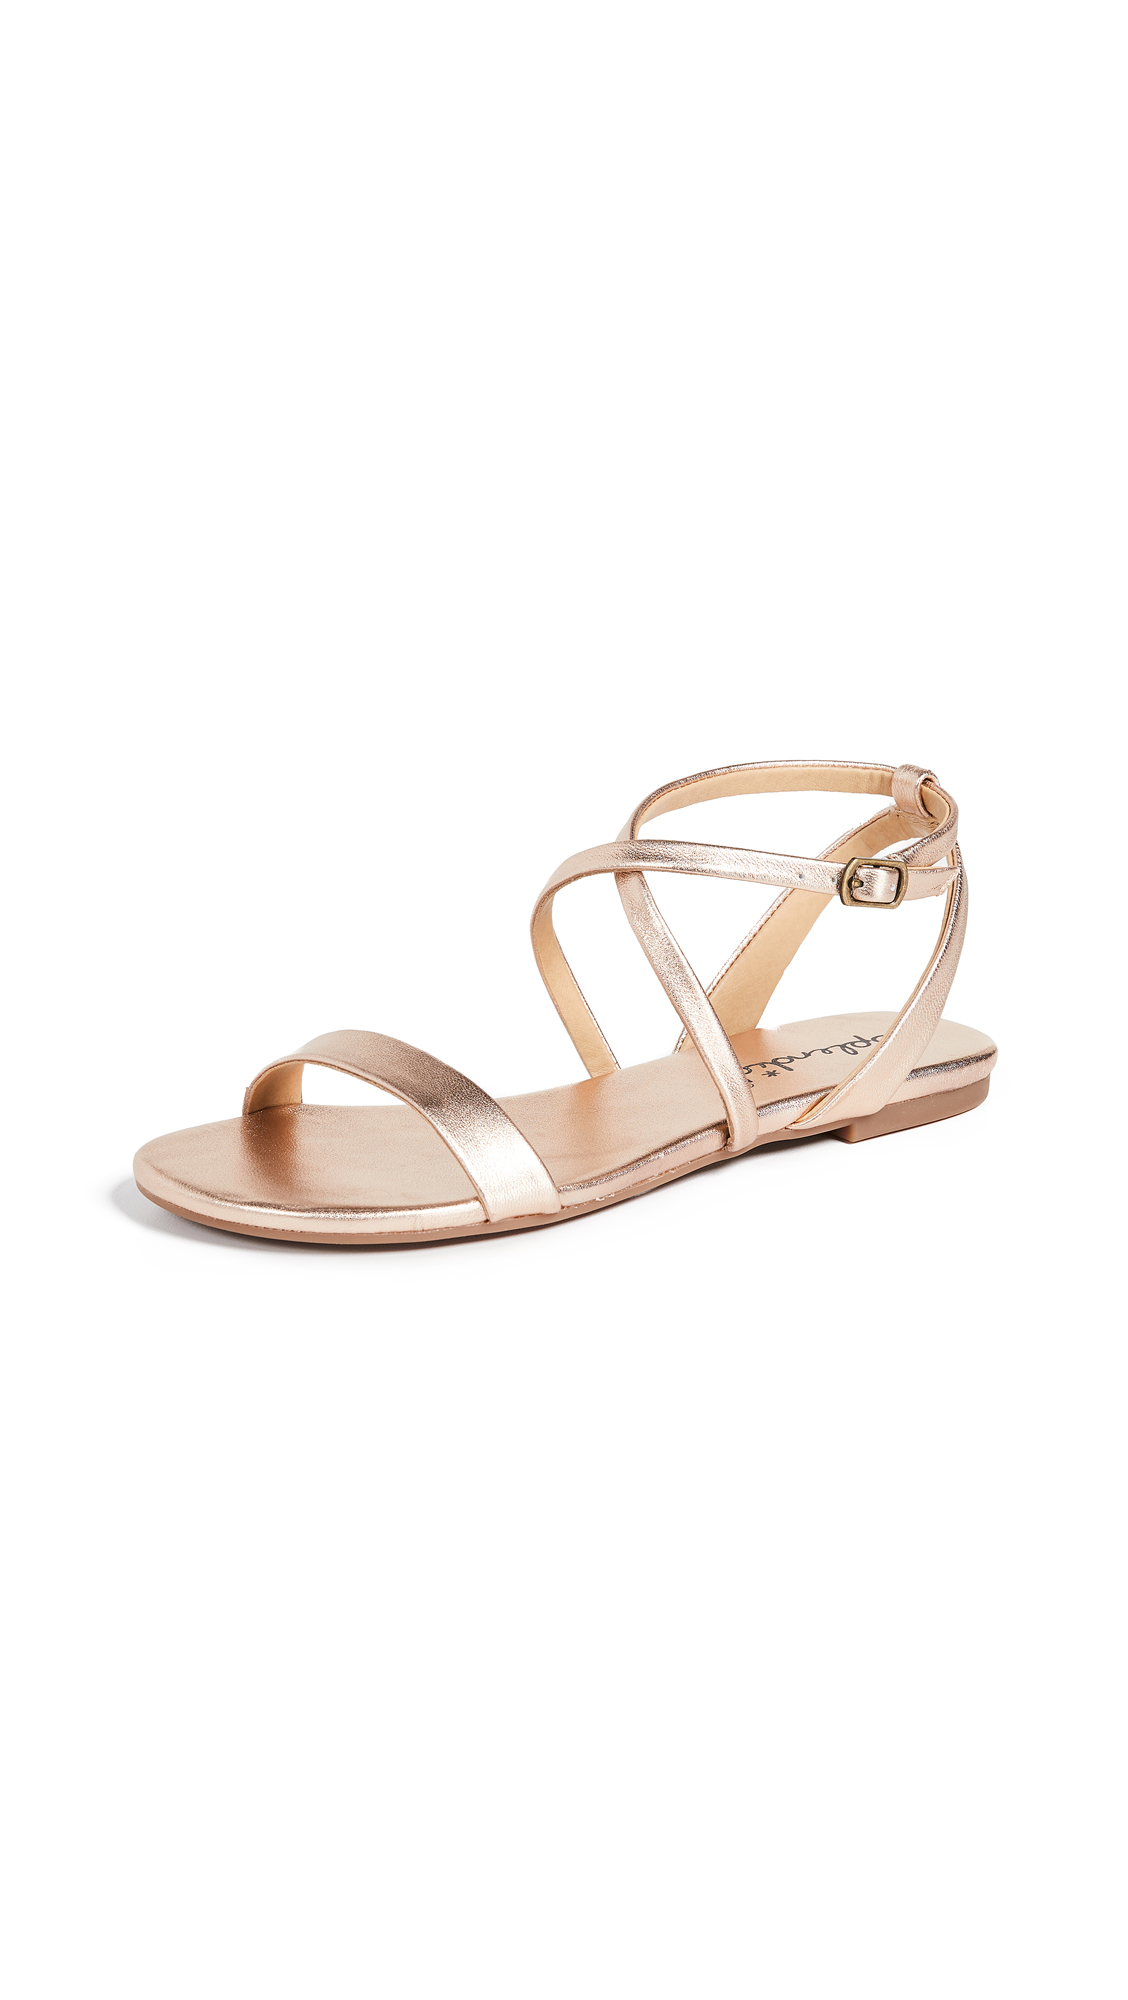 Splendid Susannah Strappy Sandals - Rose Gold